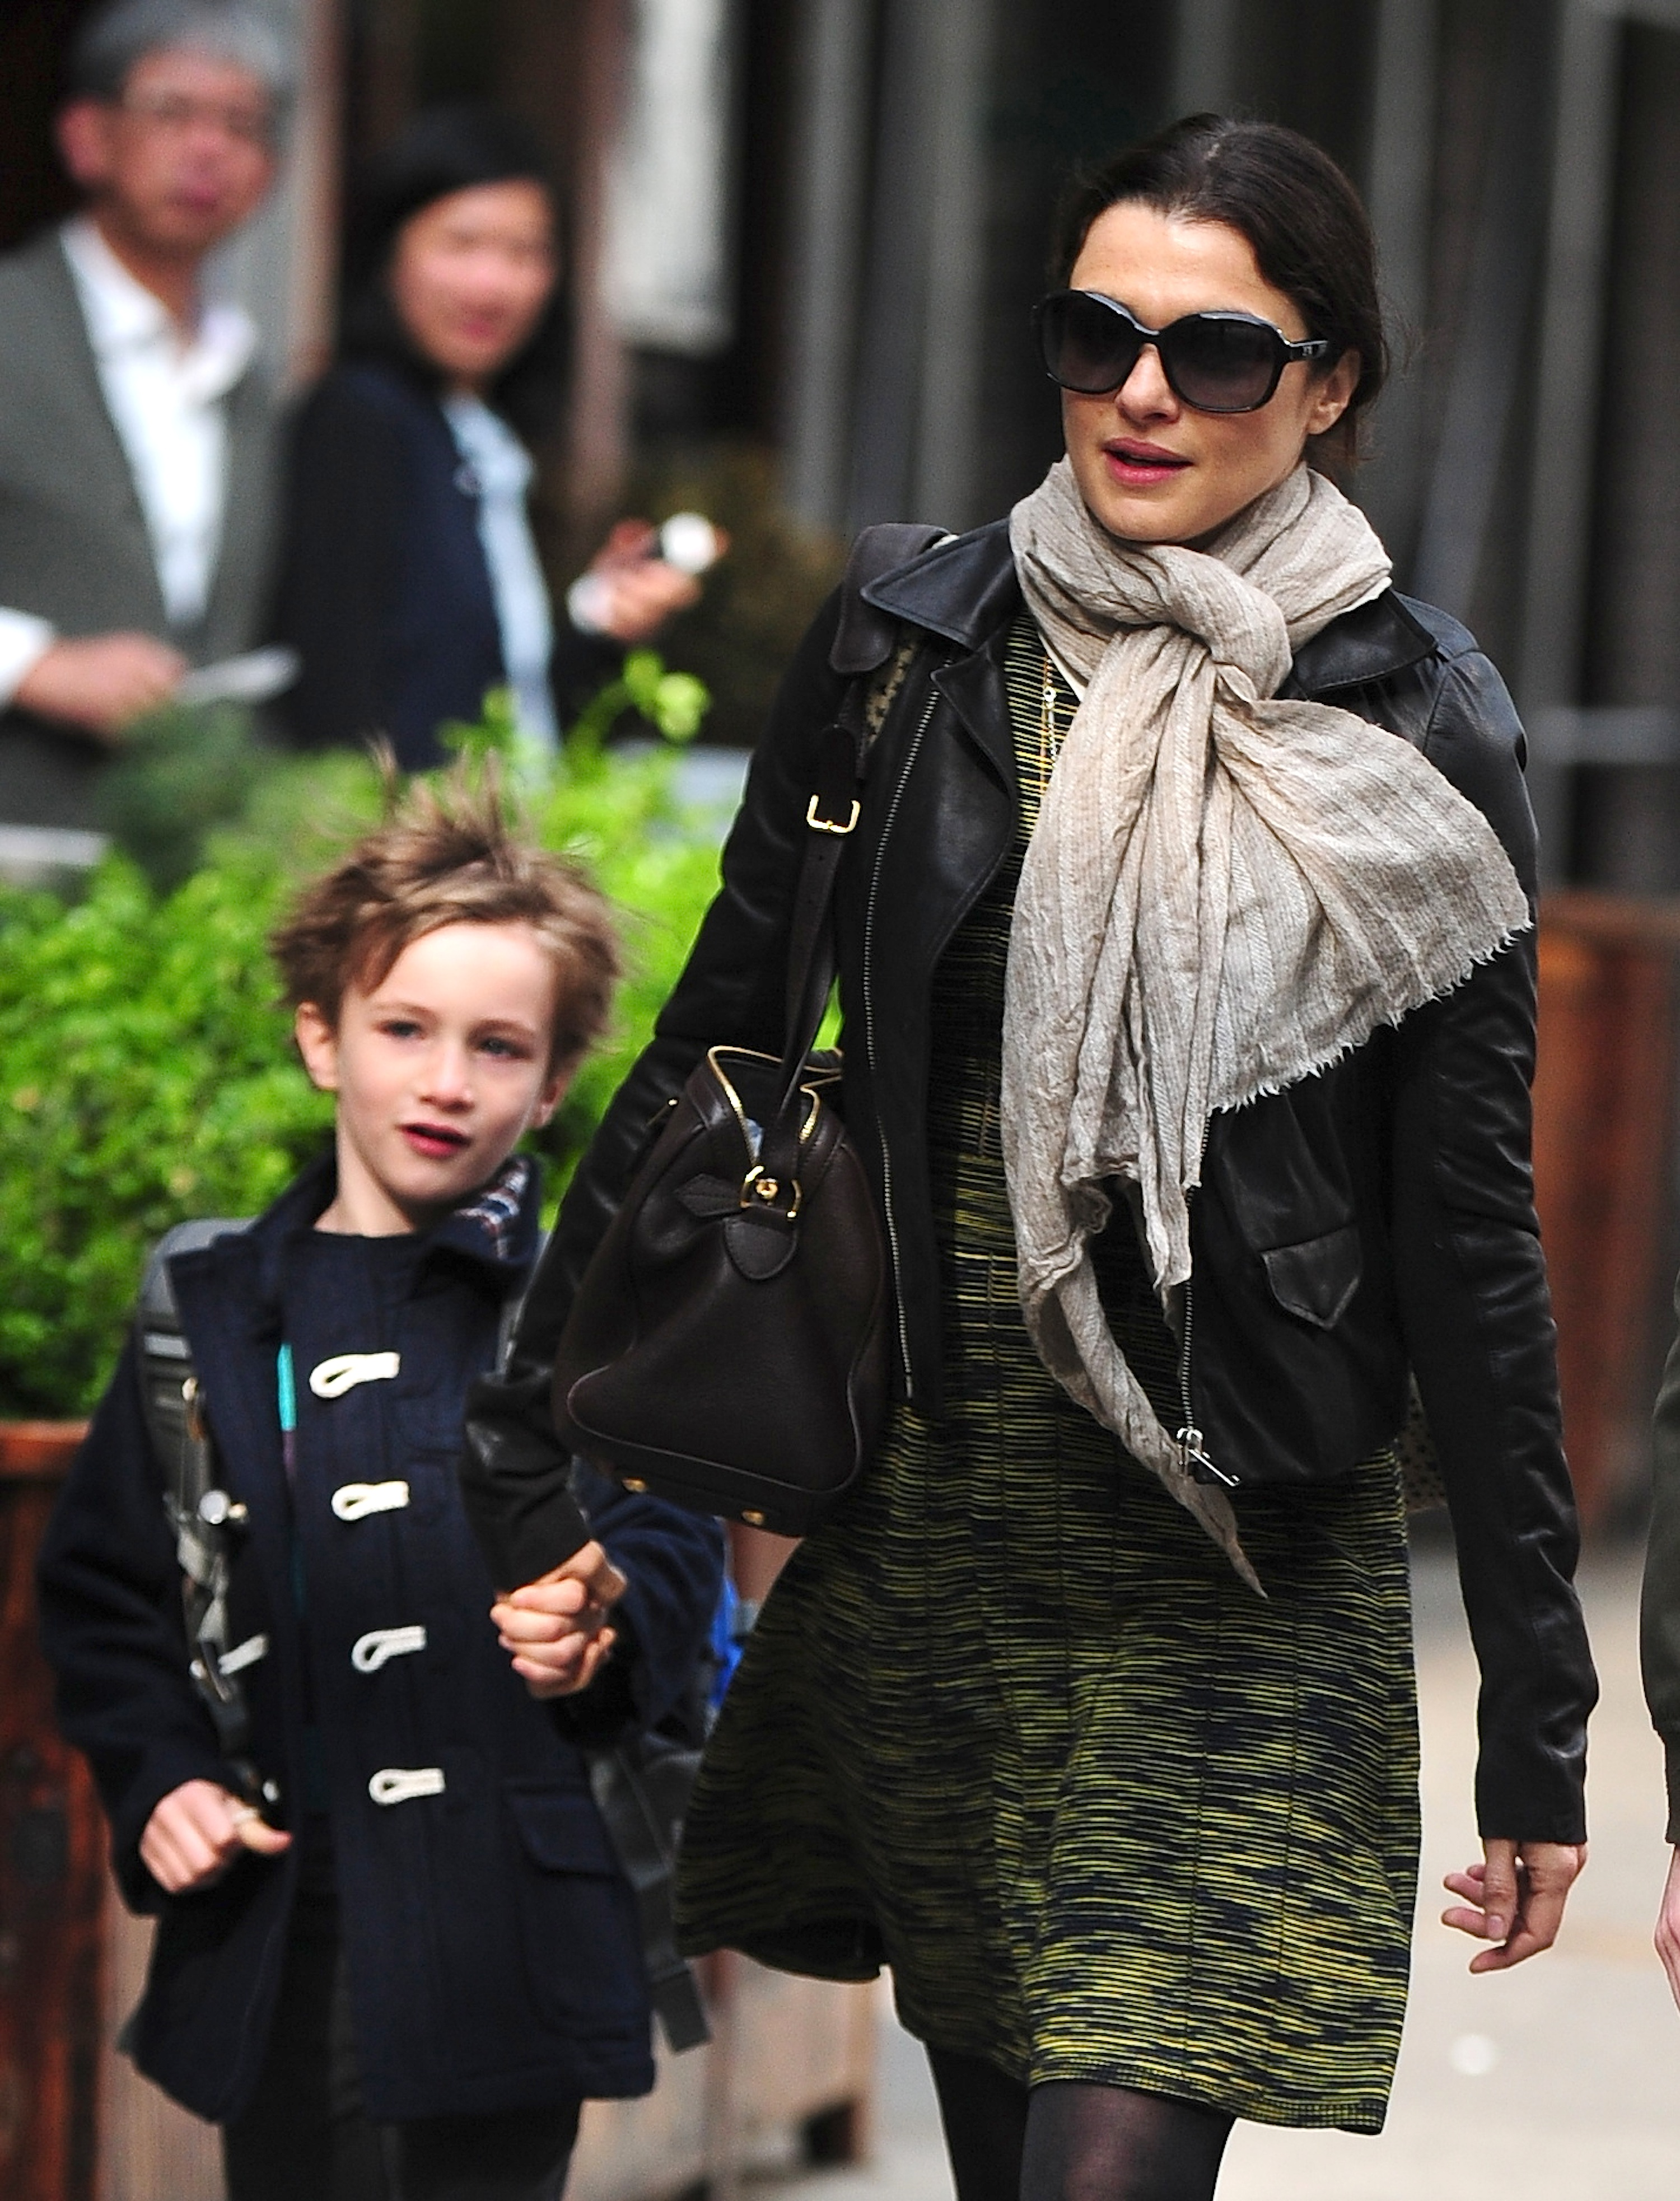 Rachel Weisz Has A Son With Darren Aronofsky In Case You Missed It